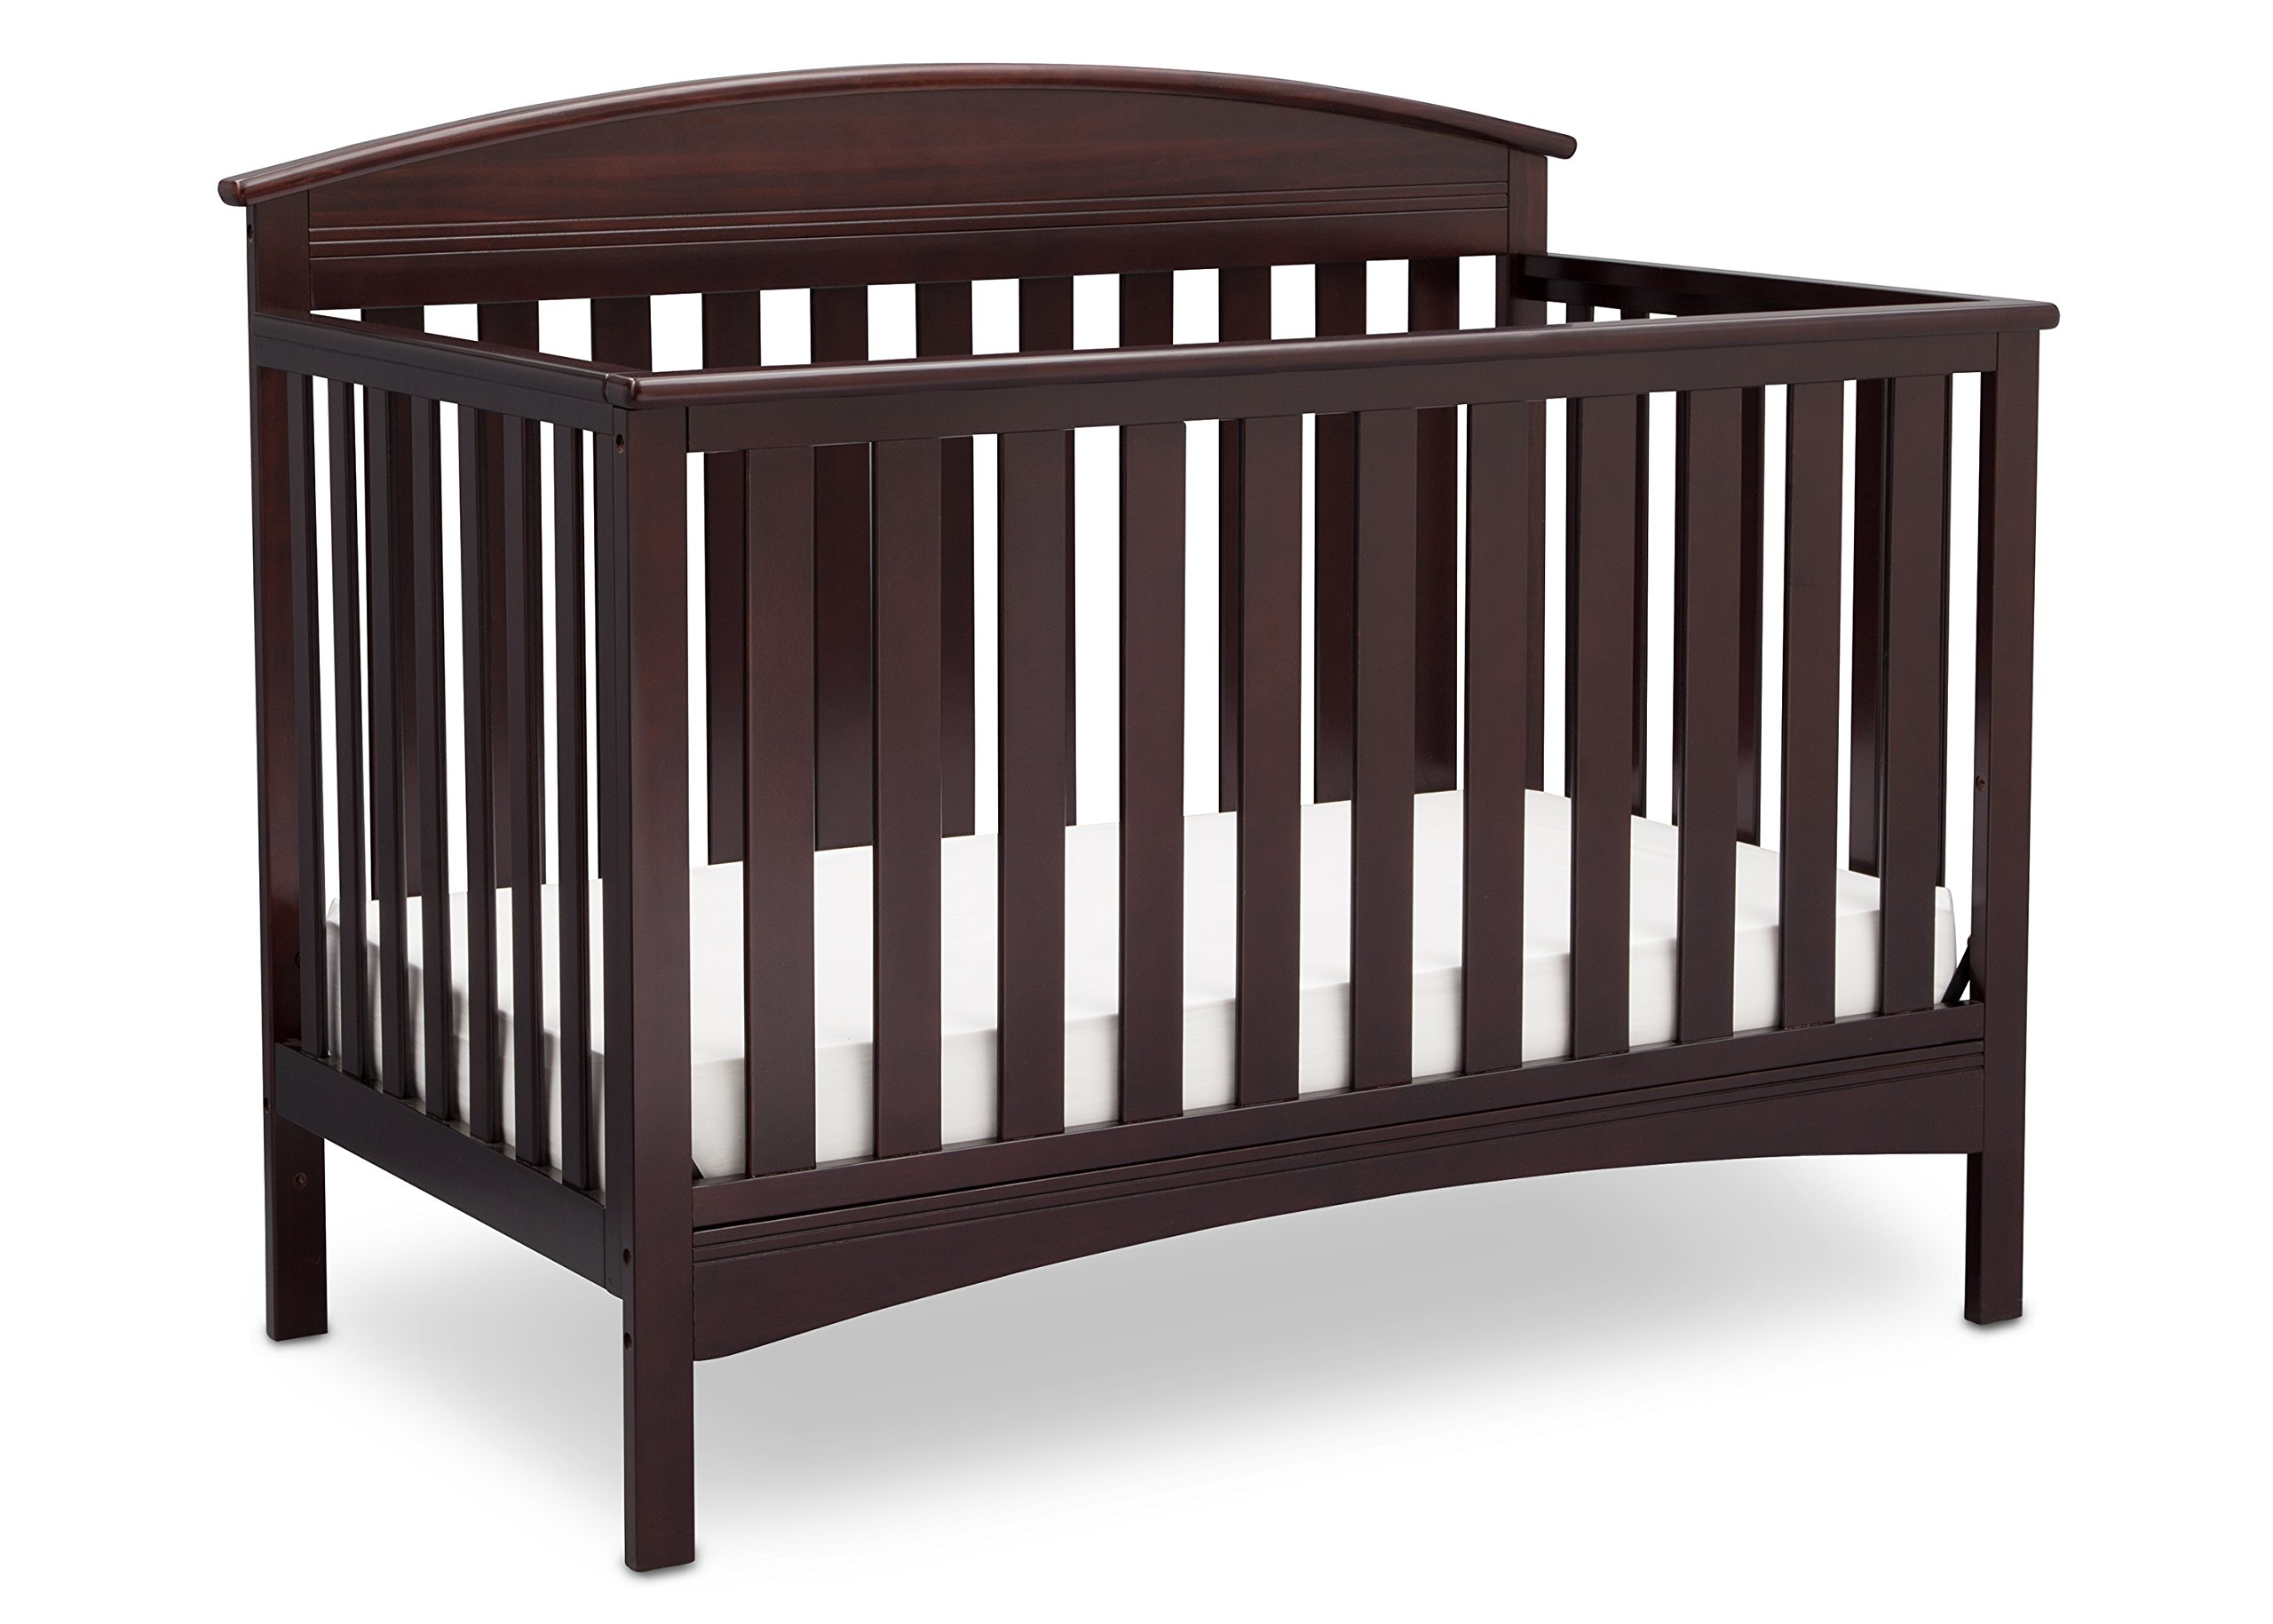 Delta Children Abby 4-in-1 Convertible Crib, Dark Chocolate